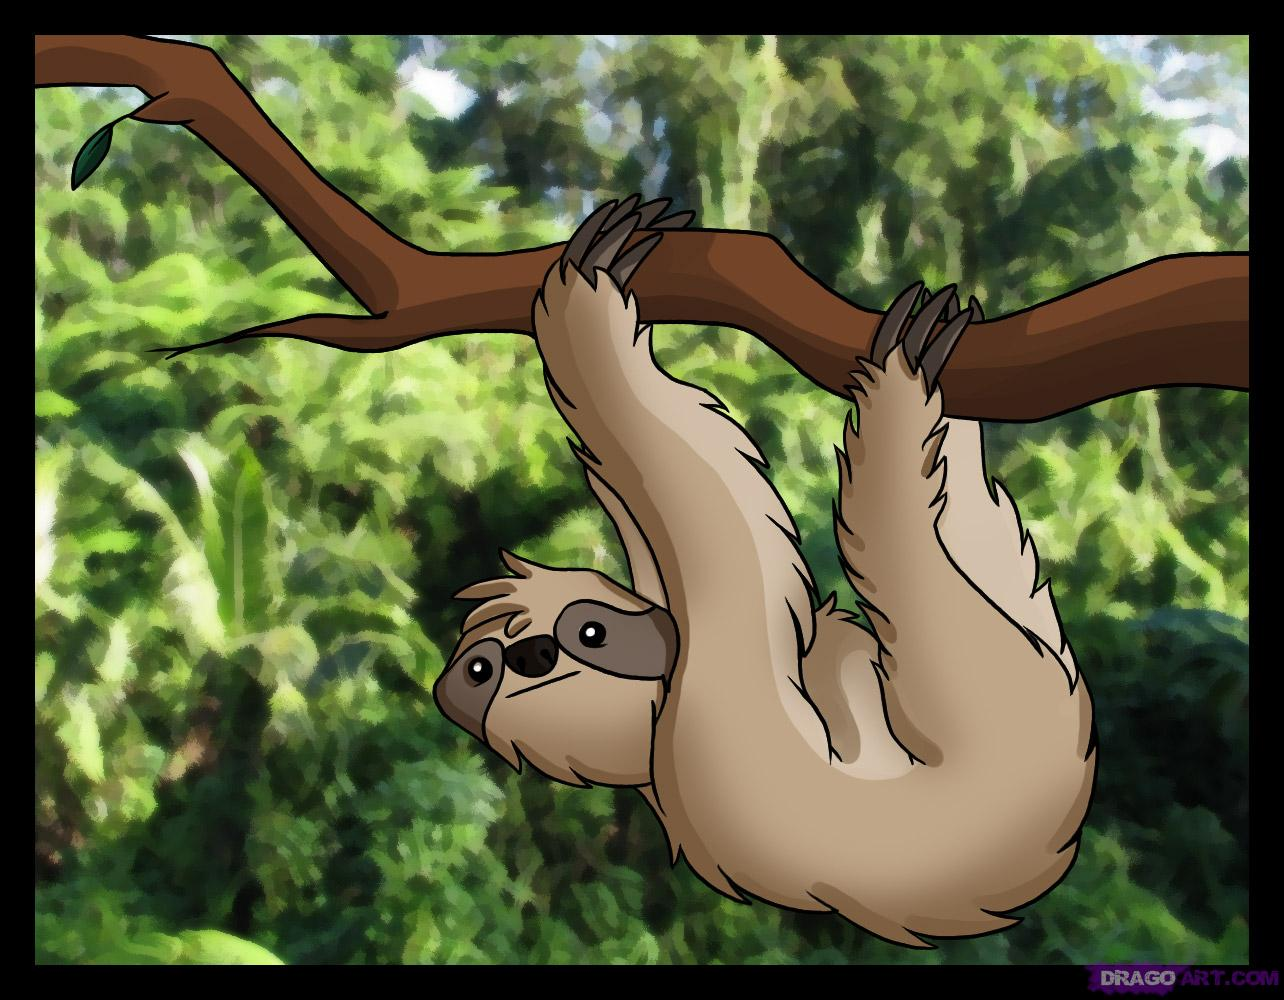 Drawn sloth hanging on tree Rainforest sloth Draw Sloth by